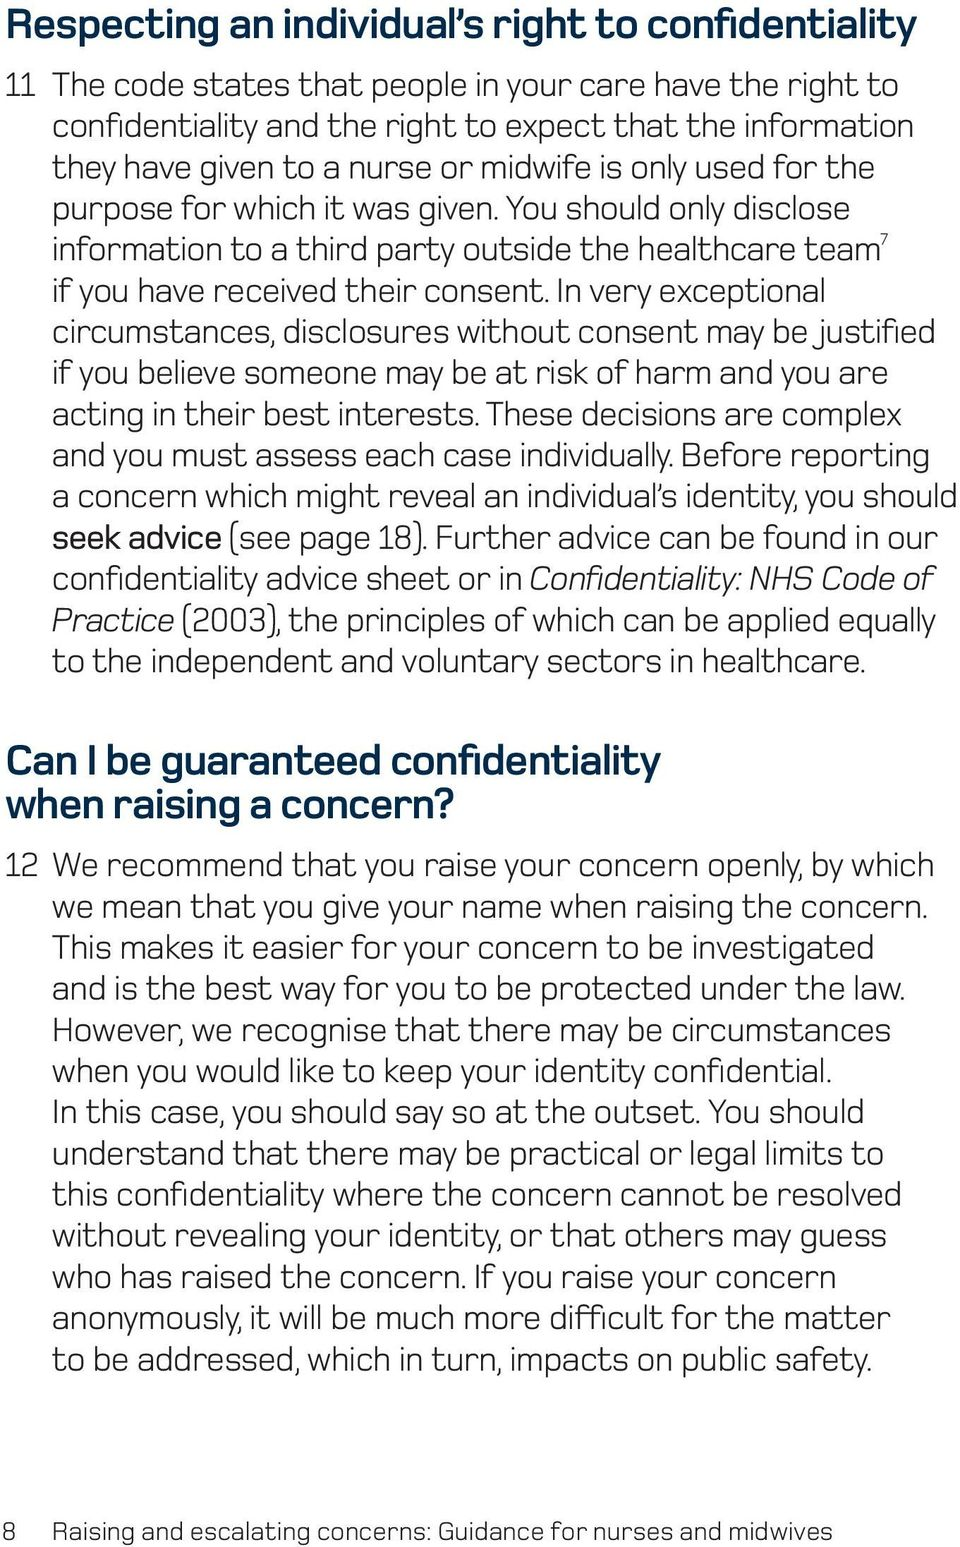 In very exceptional circumstances, disclosures without consent may be justified if you believe someone may be at risk of harm and you are acting in their best interests.